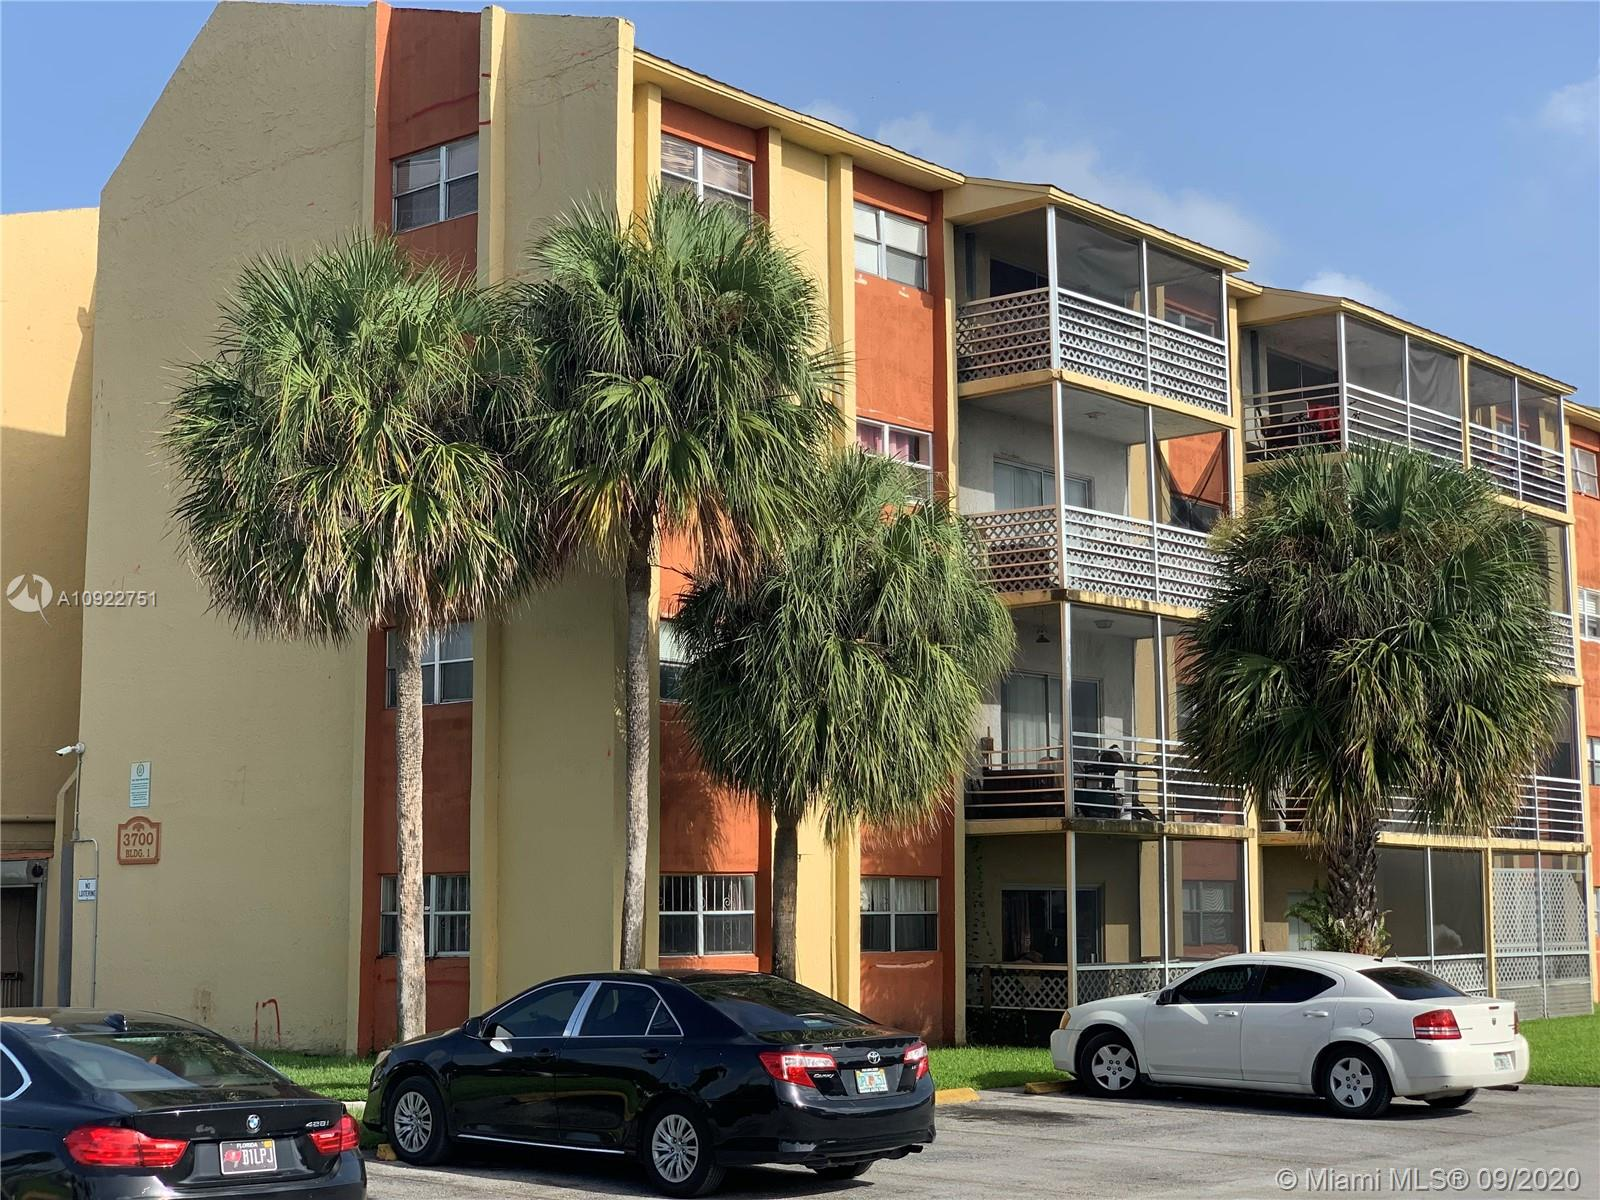 Perfect one bedroom one bathroom second floor condo for an investor. Unit is currently vacant and rents average for about $1000/month. No age or rental restrictions. Condo has a special assessment of $82.50 for the next 6 years, pay off could be negotiable at closing. Motivated seller